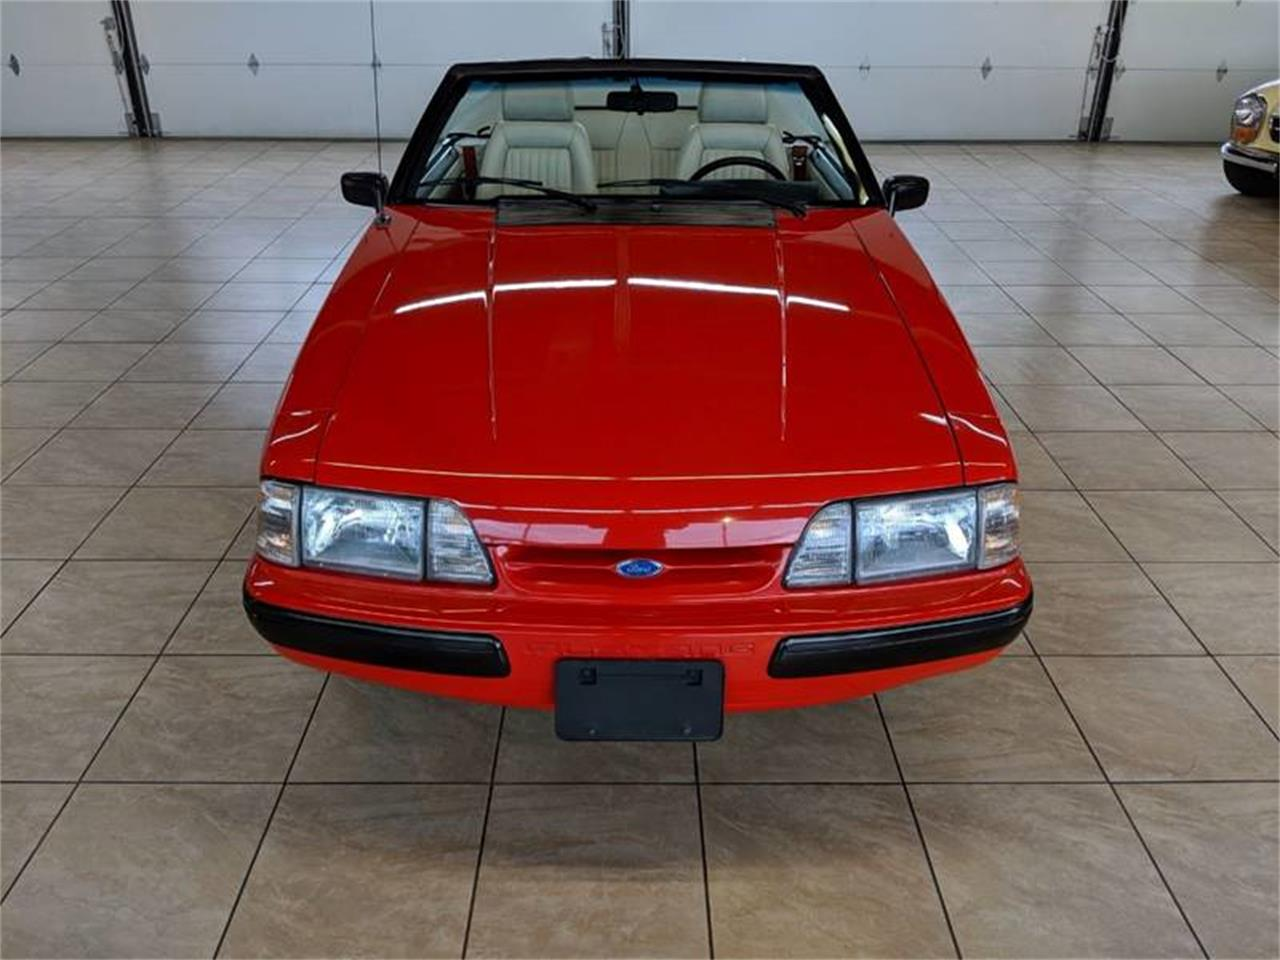 Large Picture of 1989 Ford Mustang located in St. Charles Illinois - $17,900.00 - Q2R9